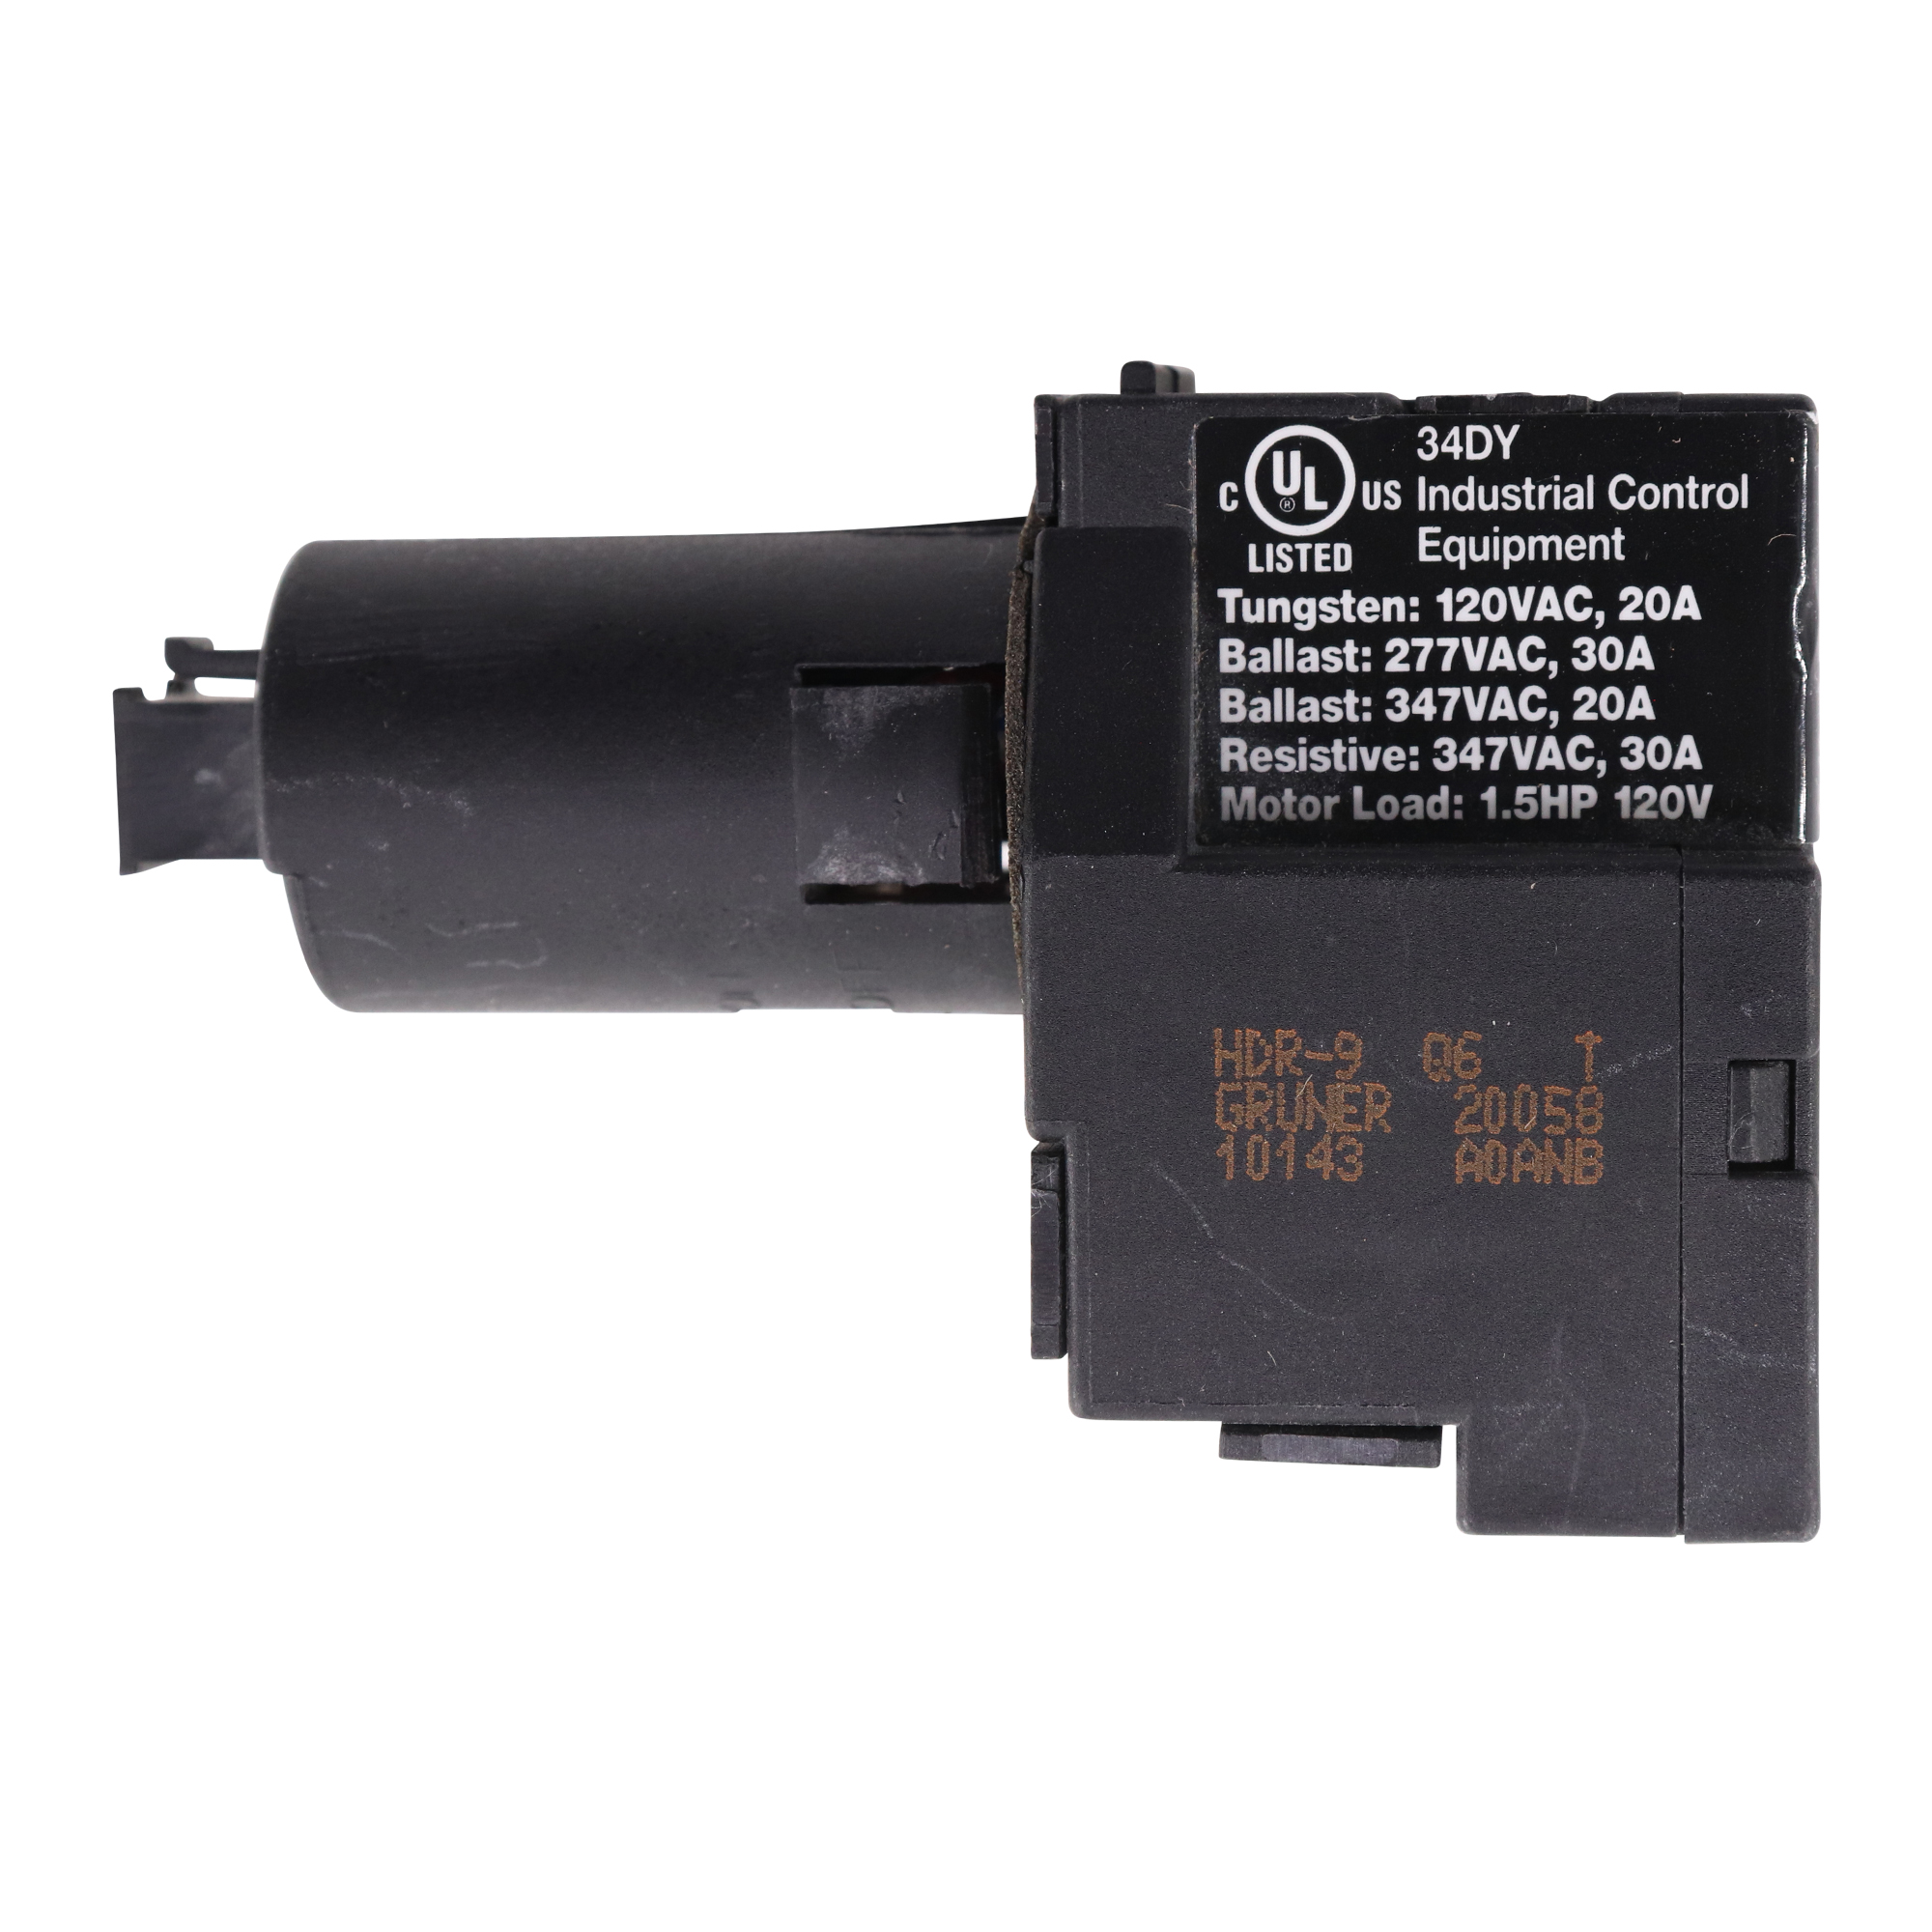 wattstopper hdr 9 low voltage lighting control relay 1 pole 120 277 347v 20 30a walmart com